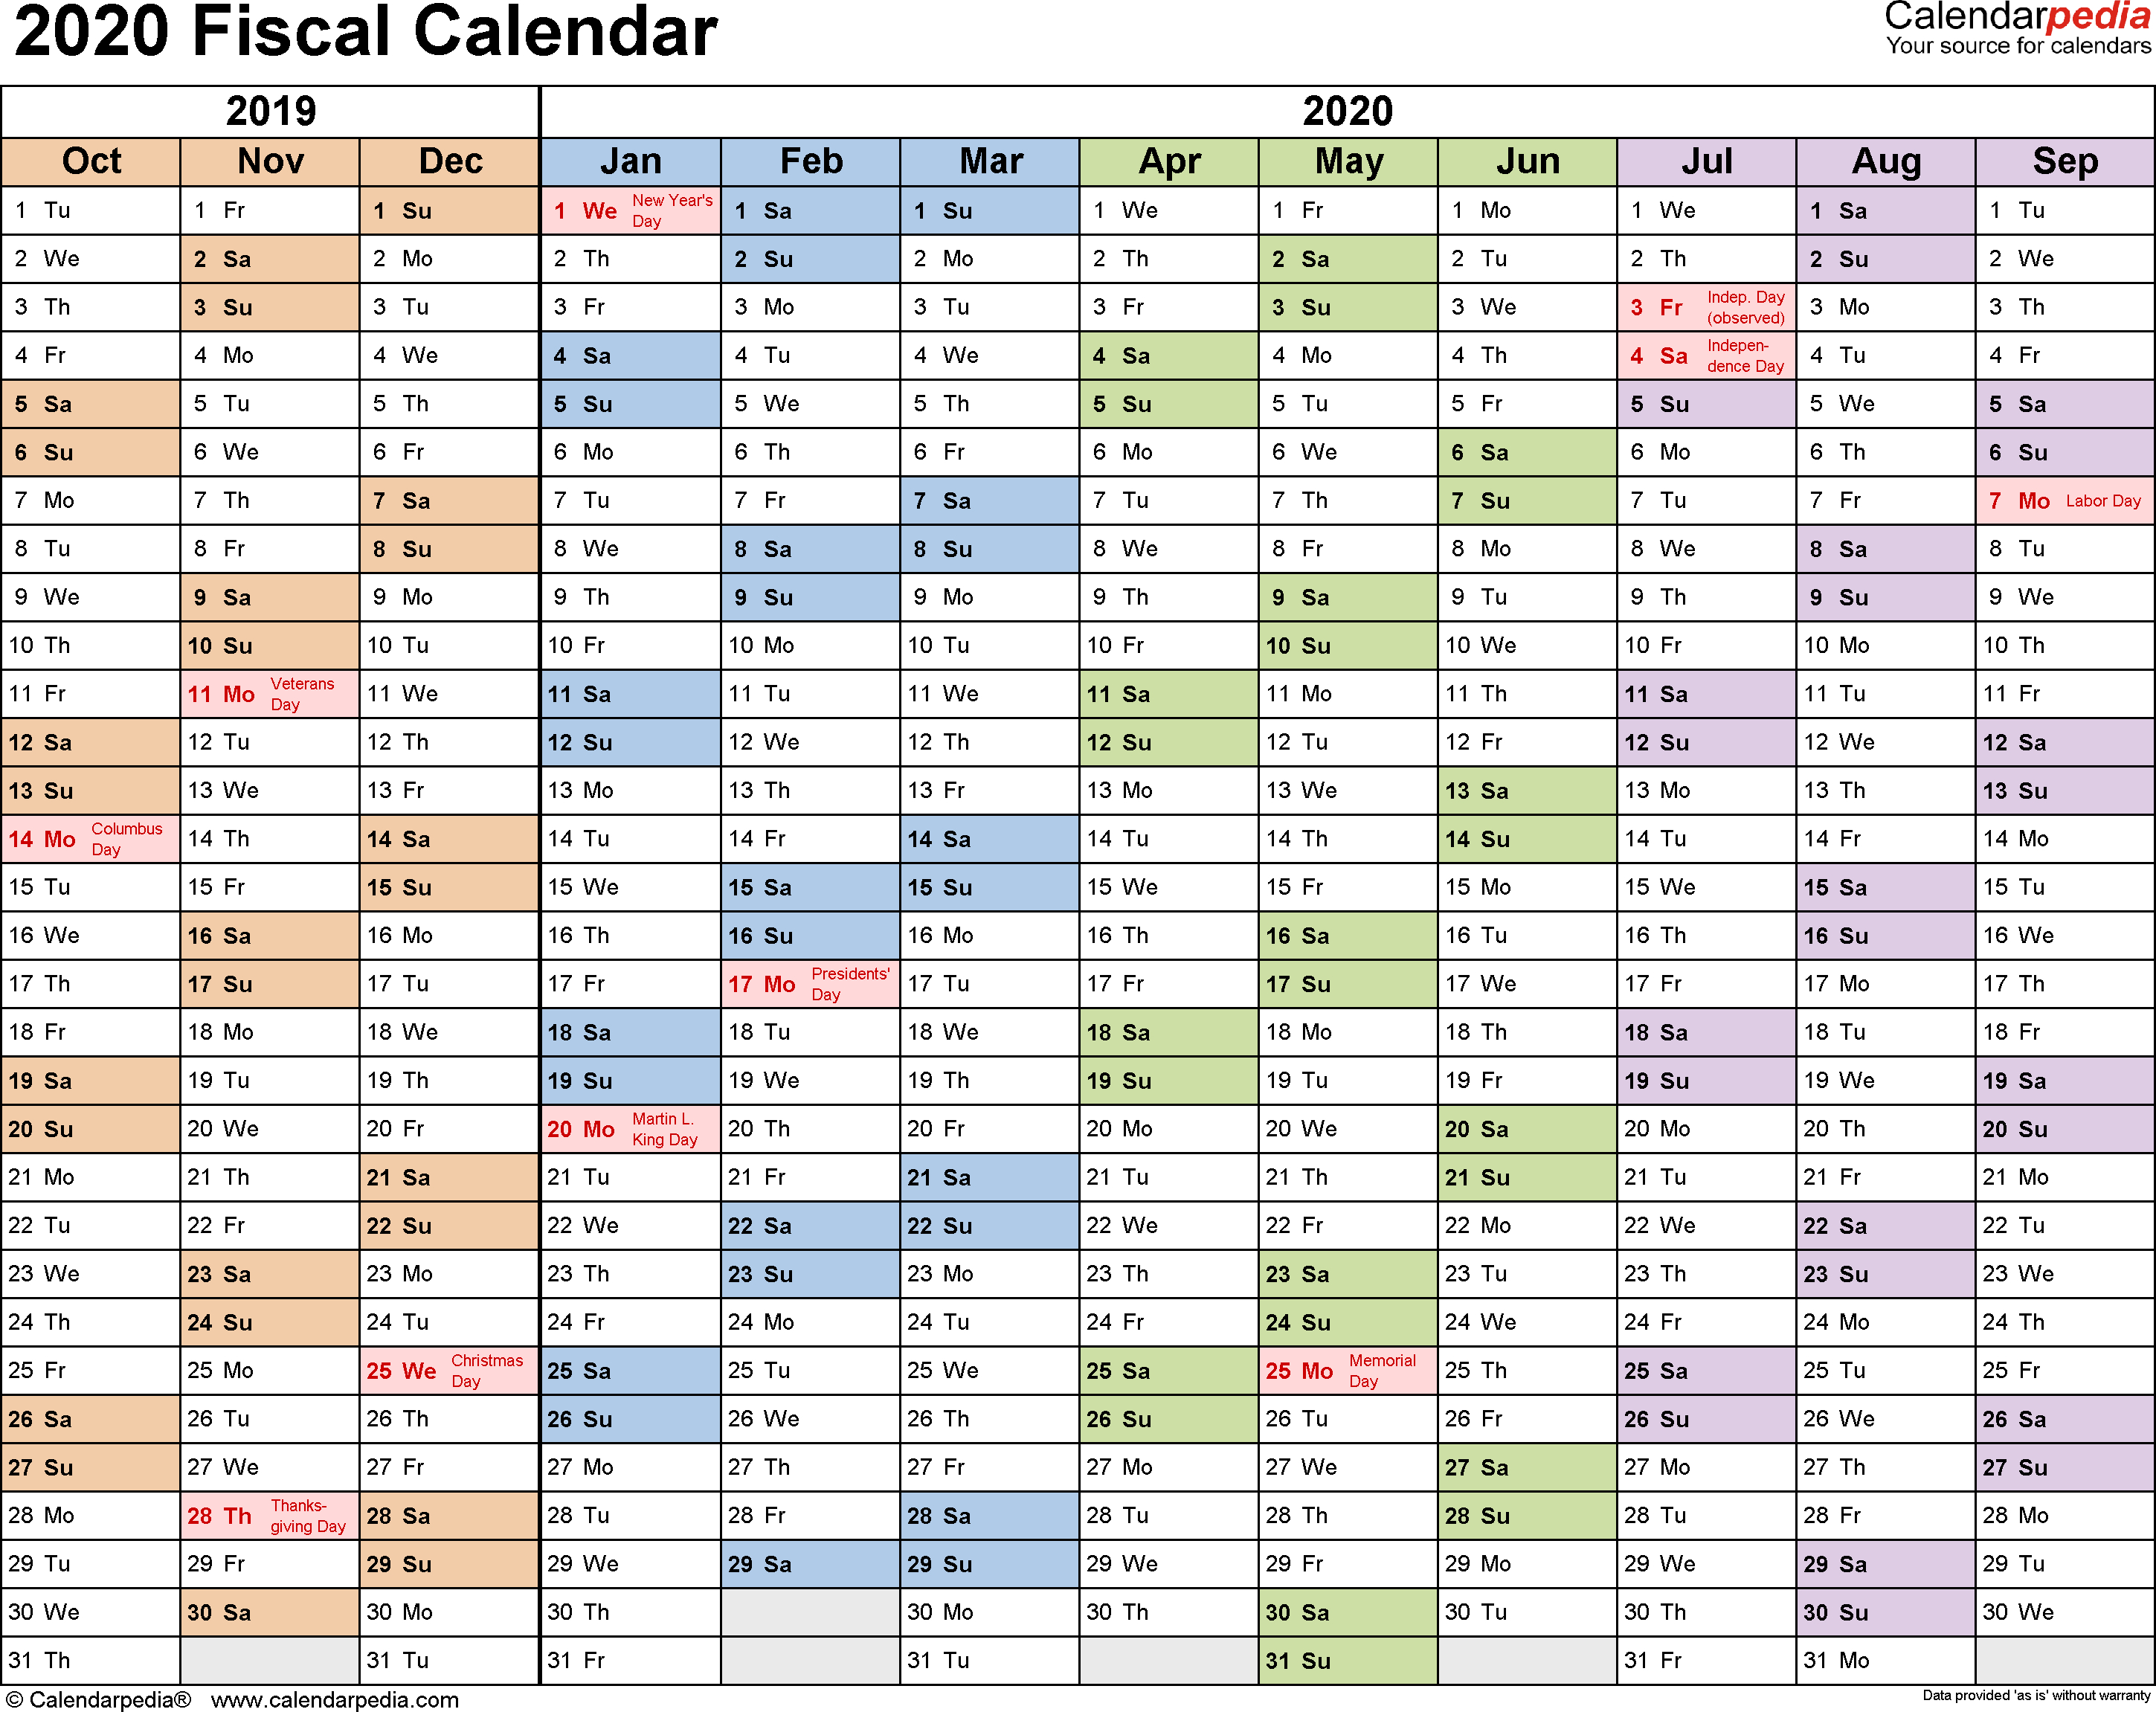 Fiscal Calendars 2020 As Free Printable Word Templates with 2020 Quarterly Calendar Printable Free